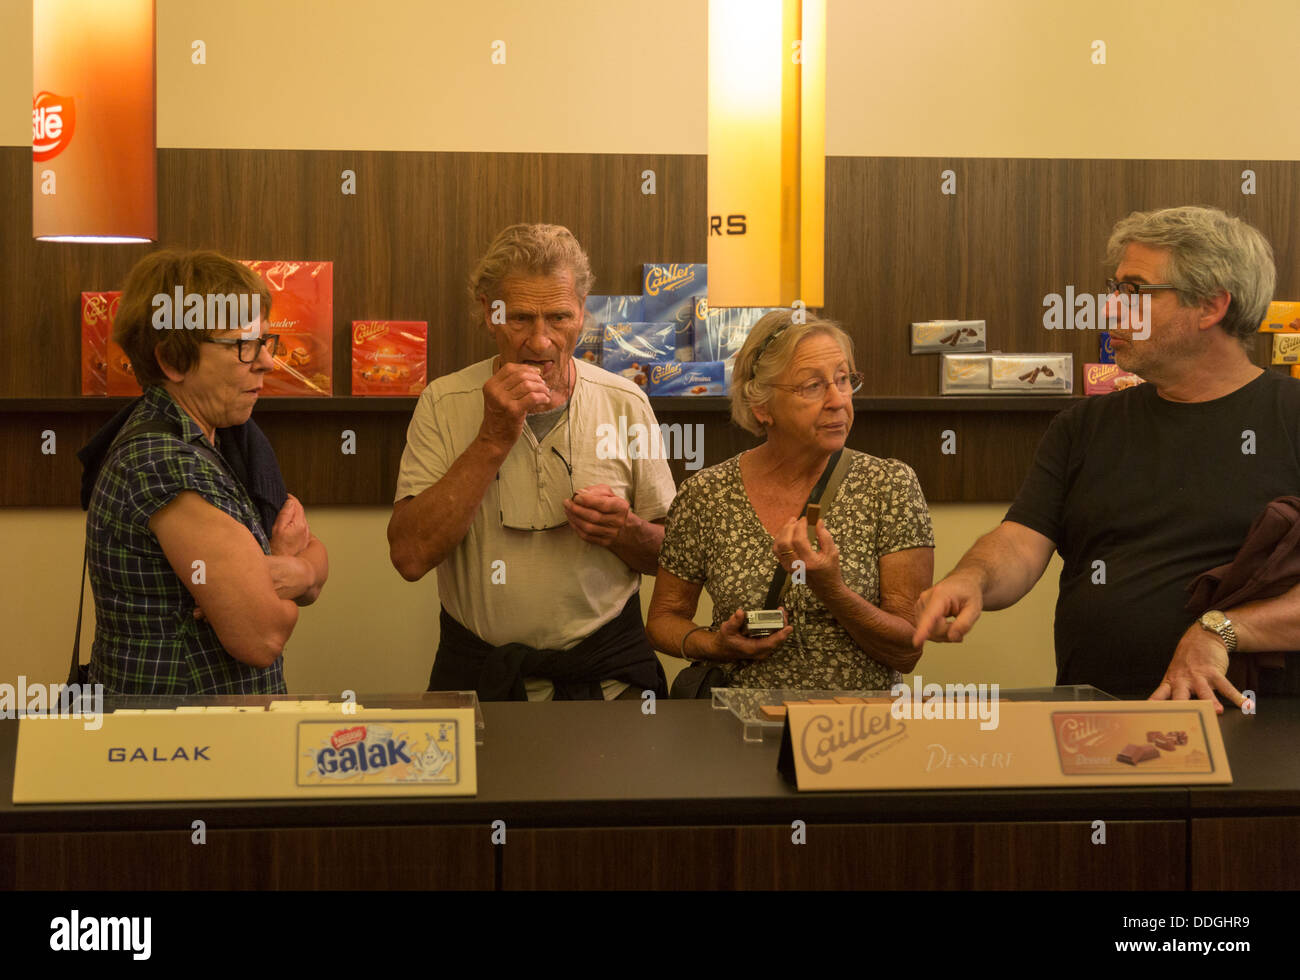 Chocolate tasting, Maison Cailler visitor center museum and factory tour, Broc, Switzerland - Stock Image